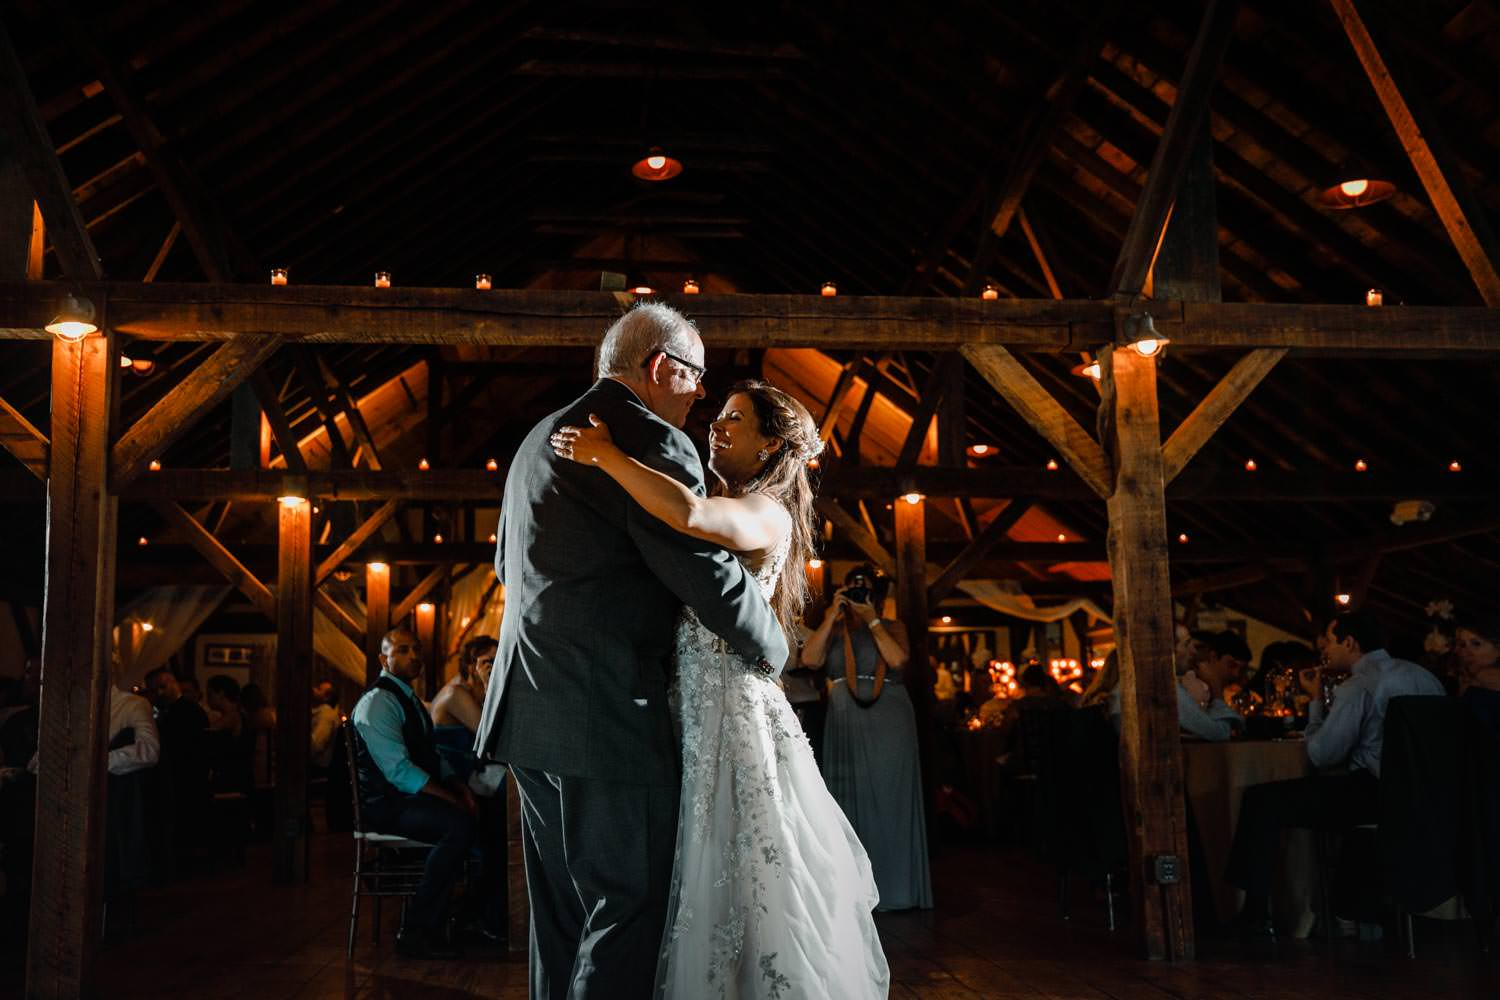 father daughter dance at wedding reception at riverside farm vermont